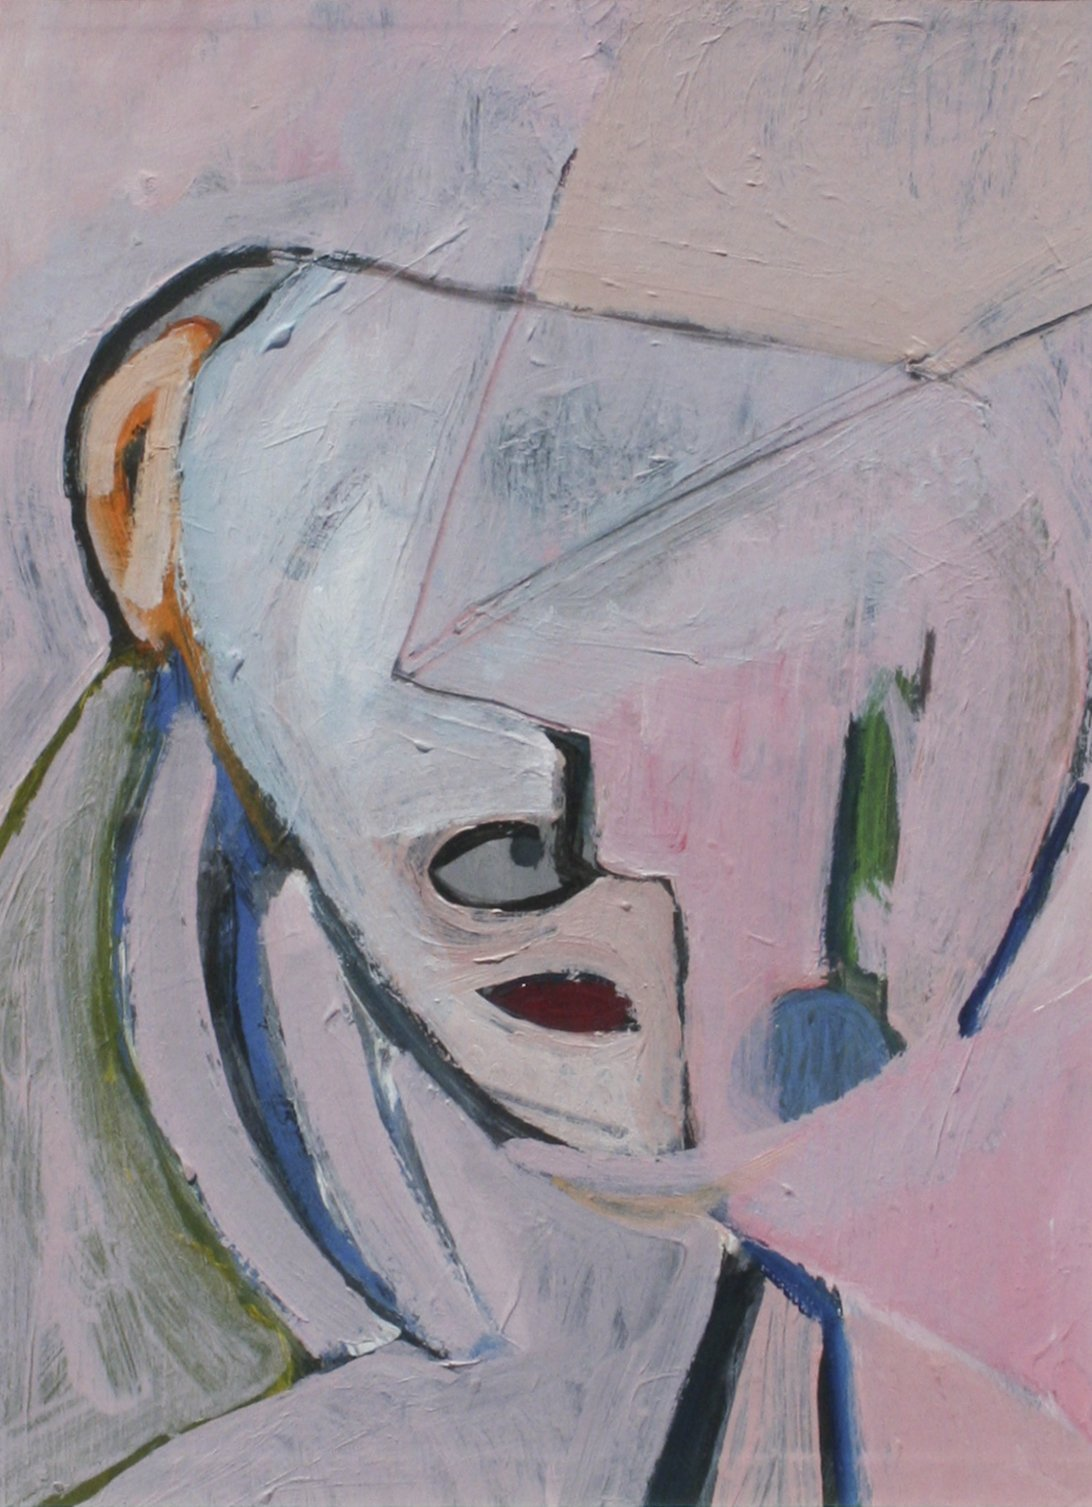 Bult, Matt – Abstract Pink Head, 1989